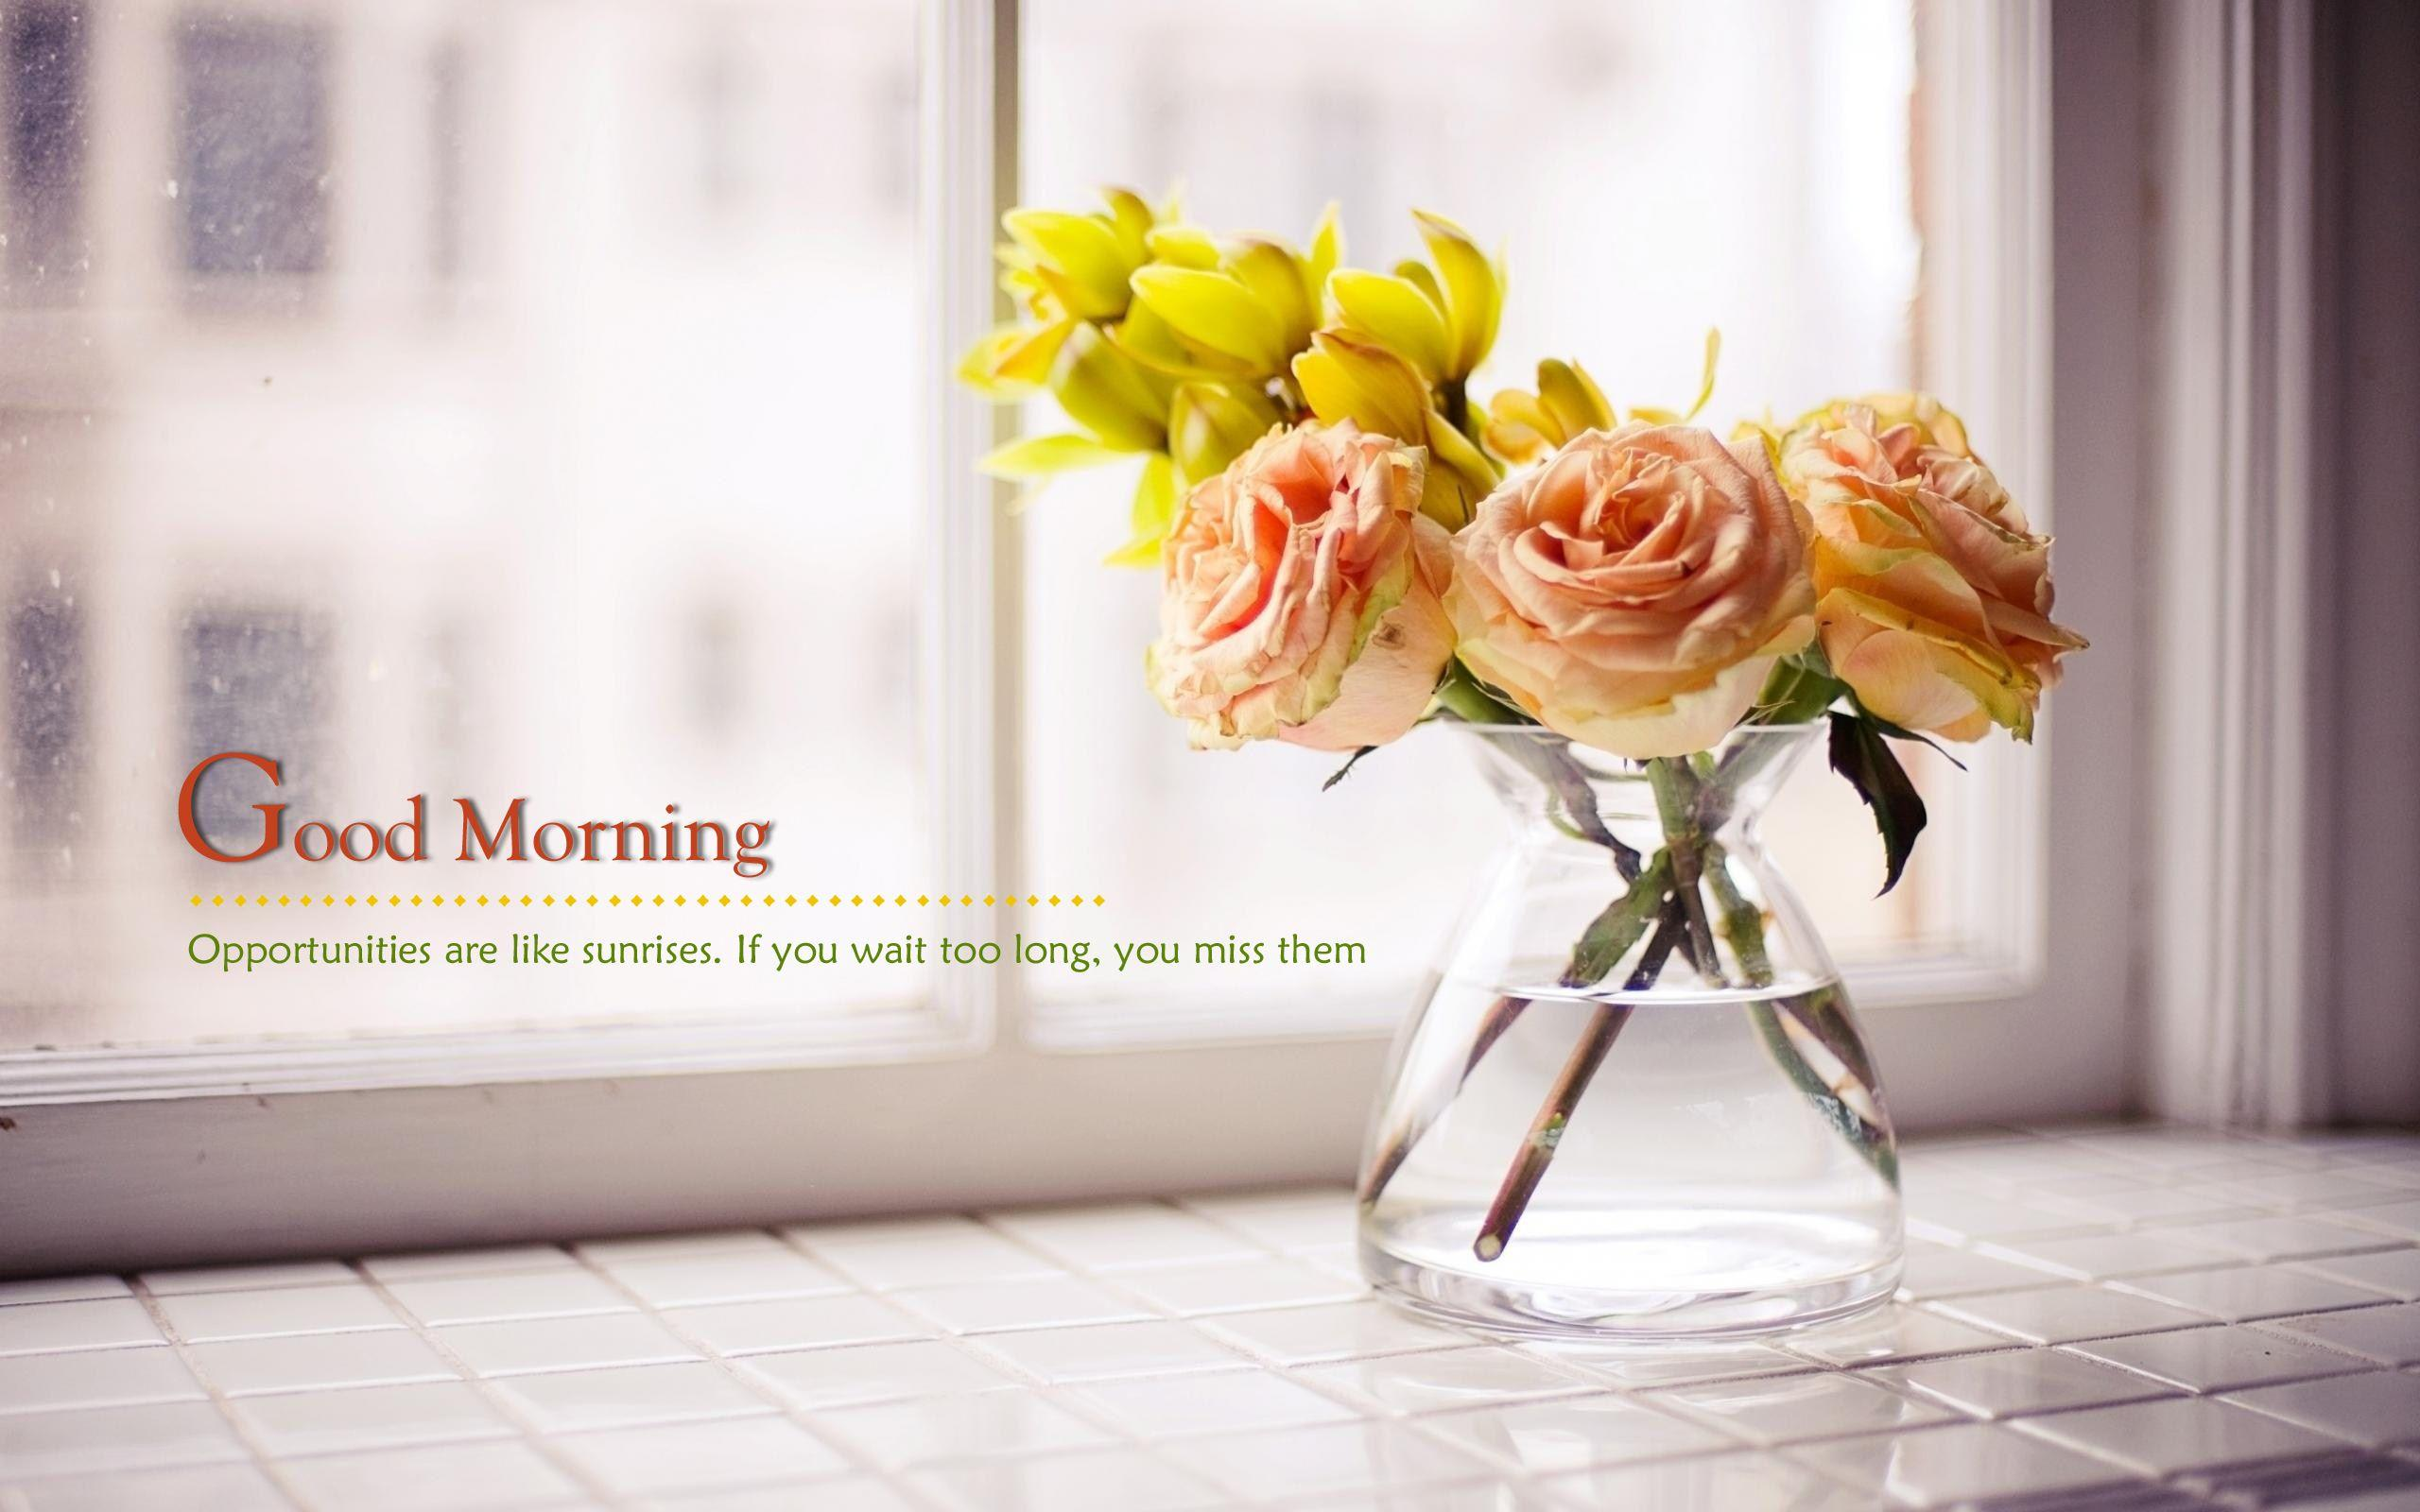 Good Morning Images With Yellow Flowers Hd | Kayaflower co